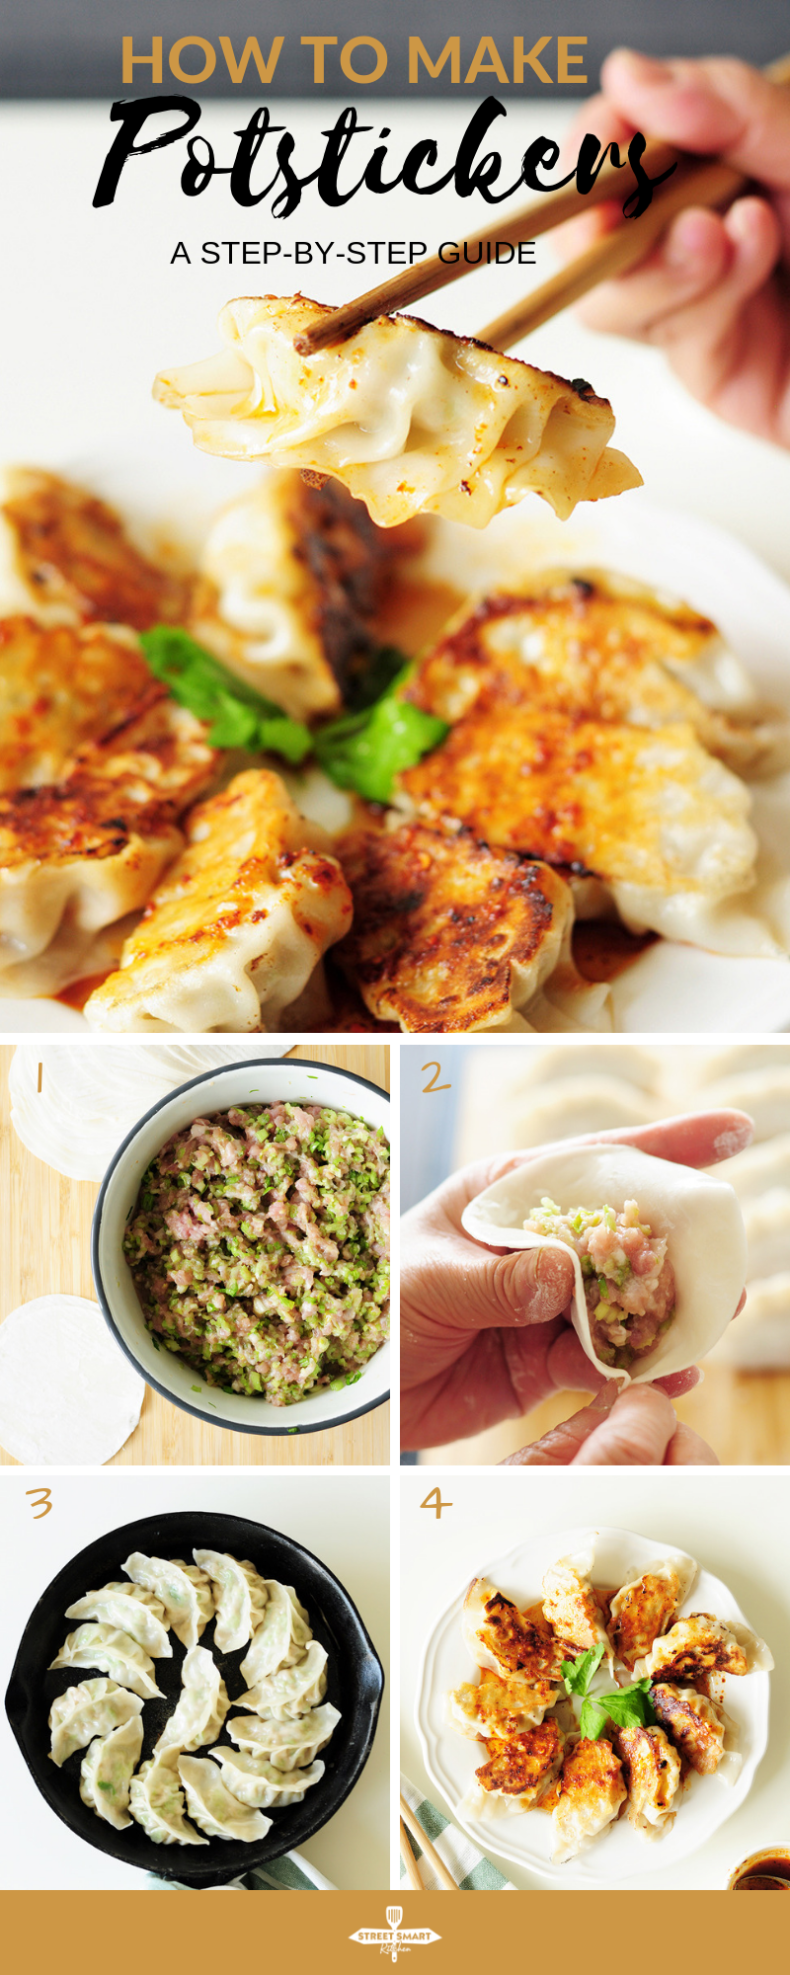 Potstickers are one of the classics in Chinese cuisine. They also make a wonderful, healthy freezer meal for a whole family. Here's a step-by-step guide to homemade potstickers.